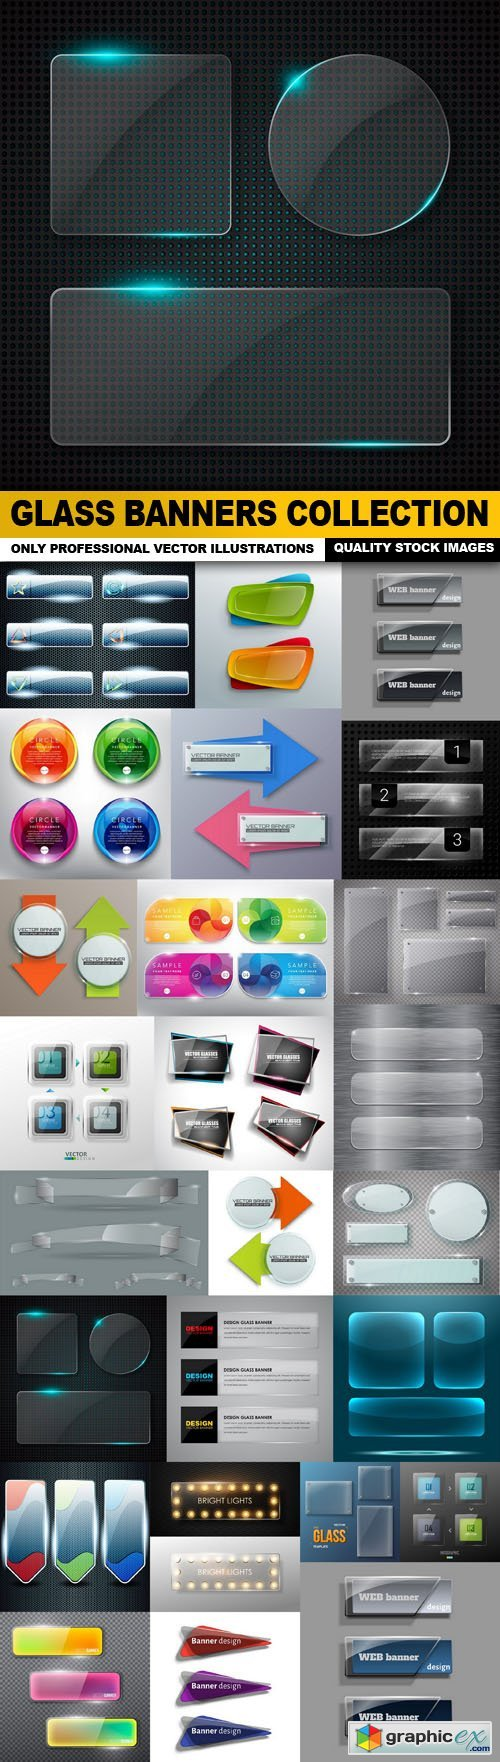 Glass Banners Collection - 25 Vector